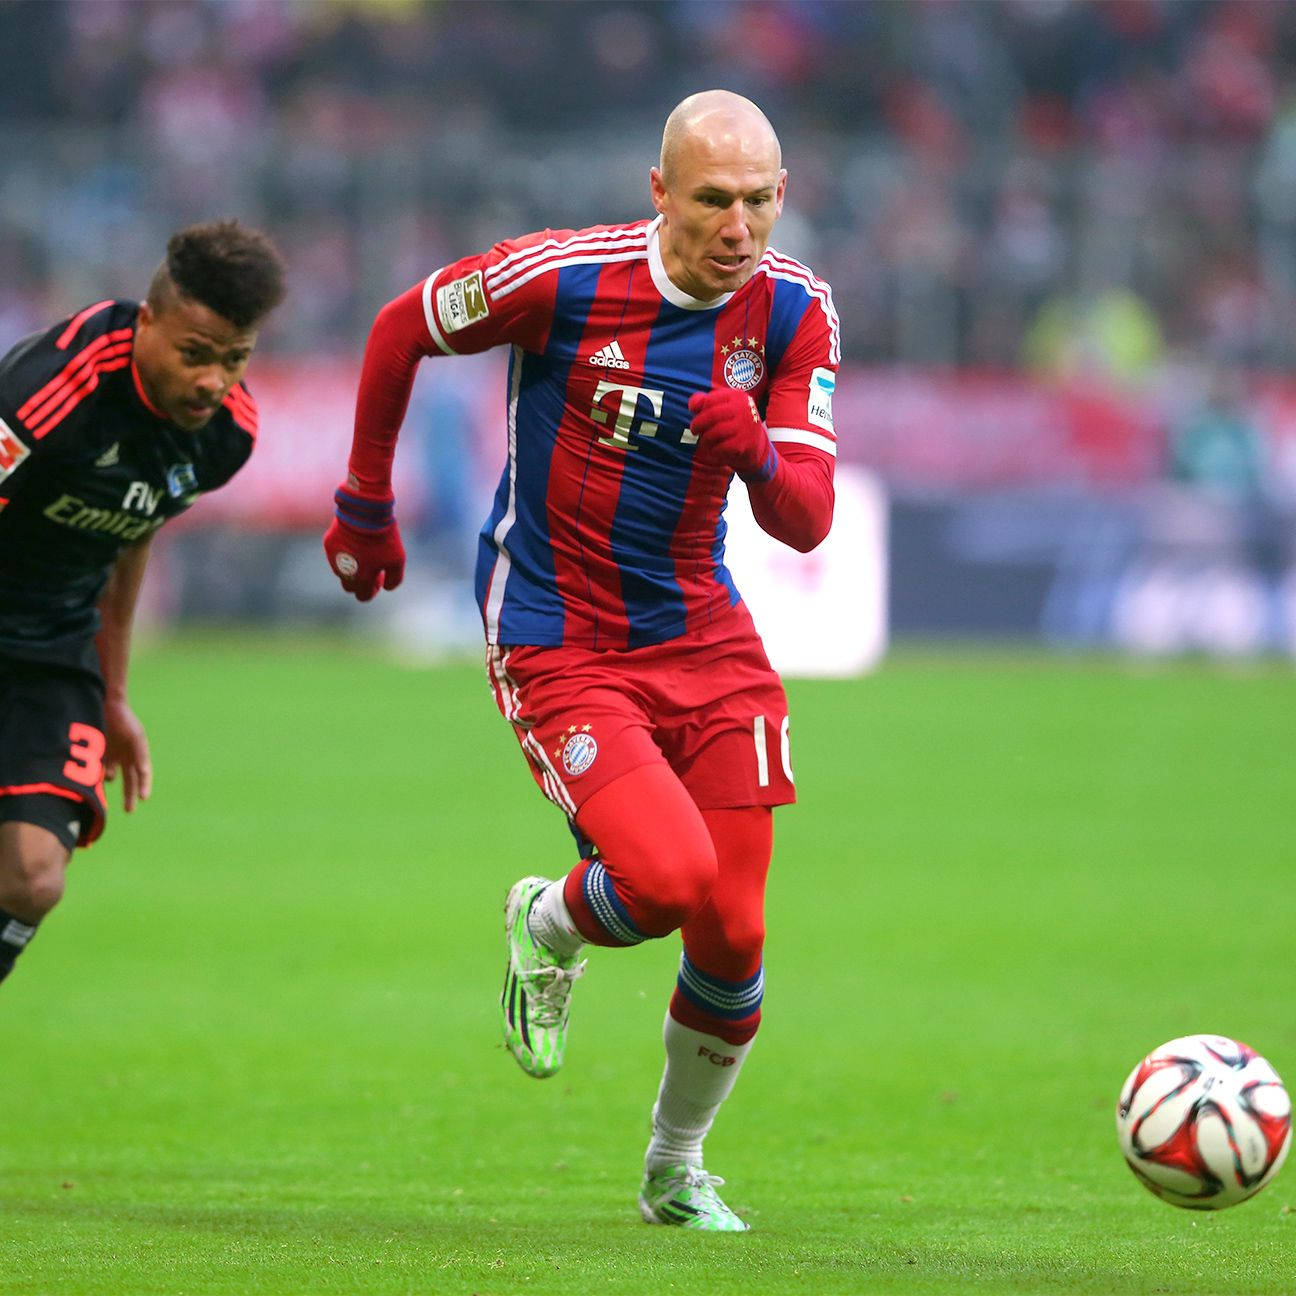 Arjen Robben was one of three Bayern players to tally a brace against Hamburg on Saturday.